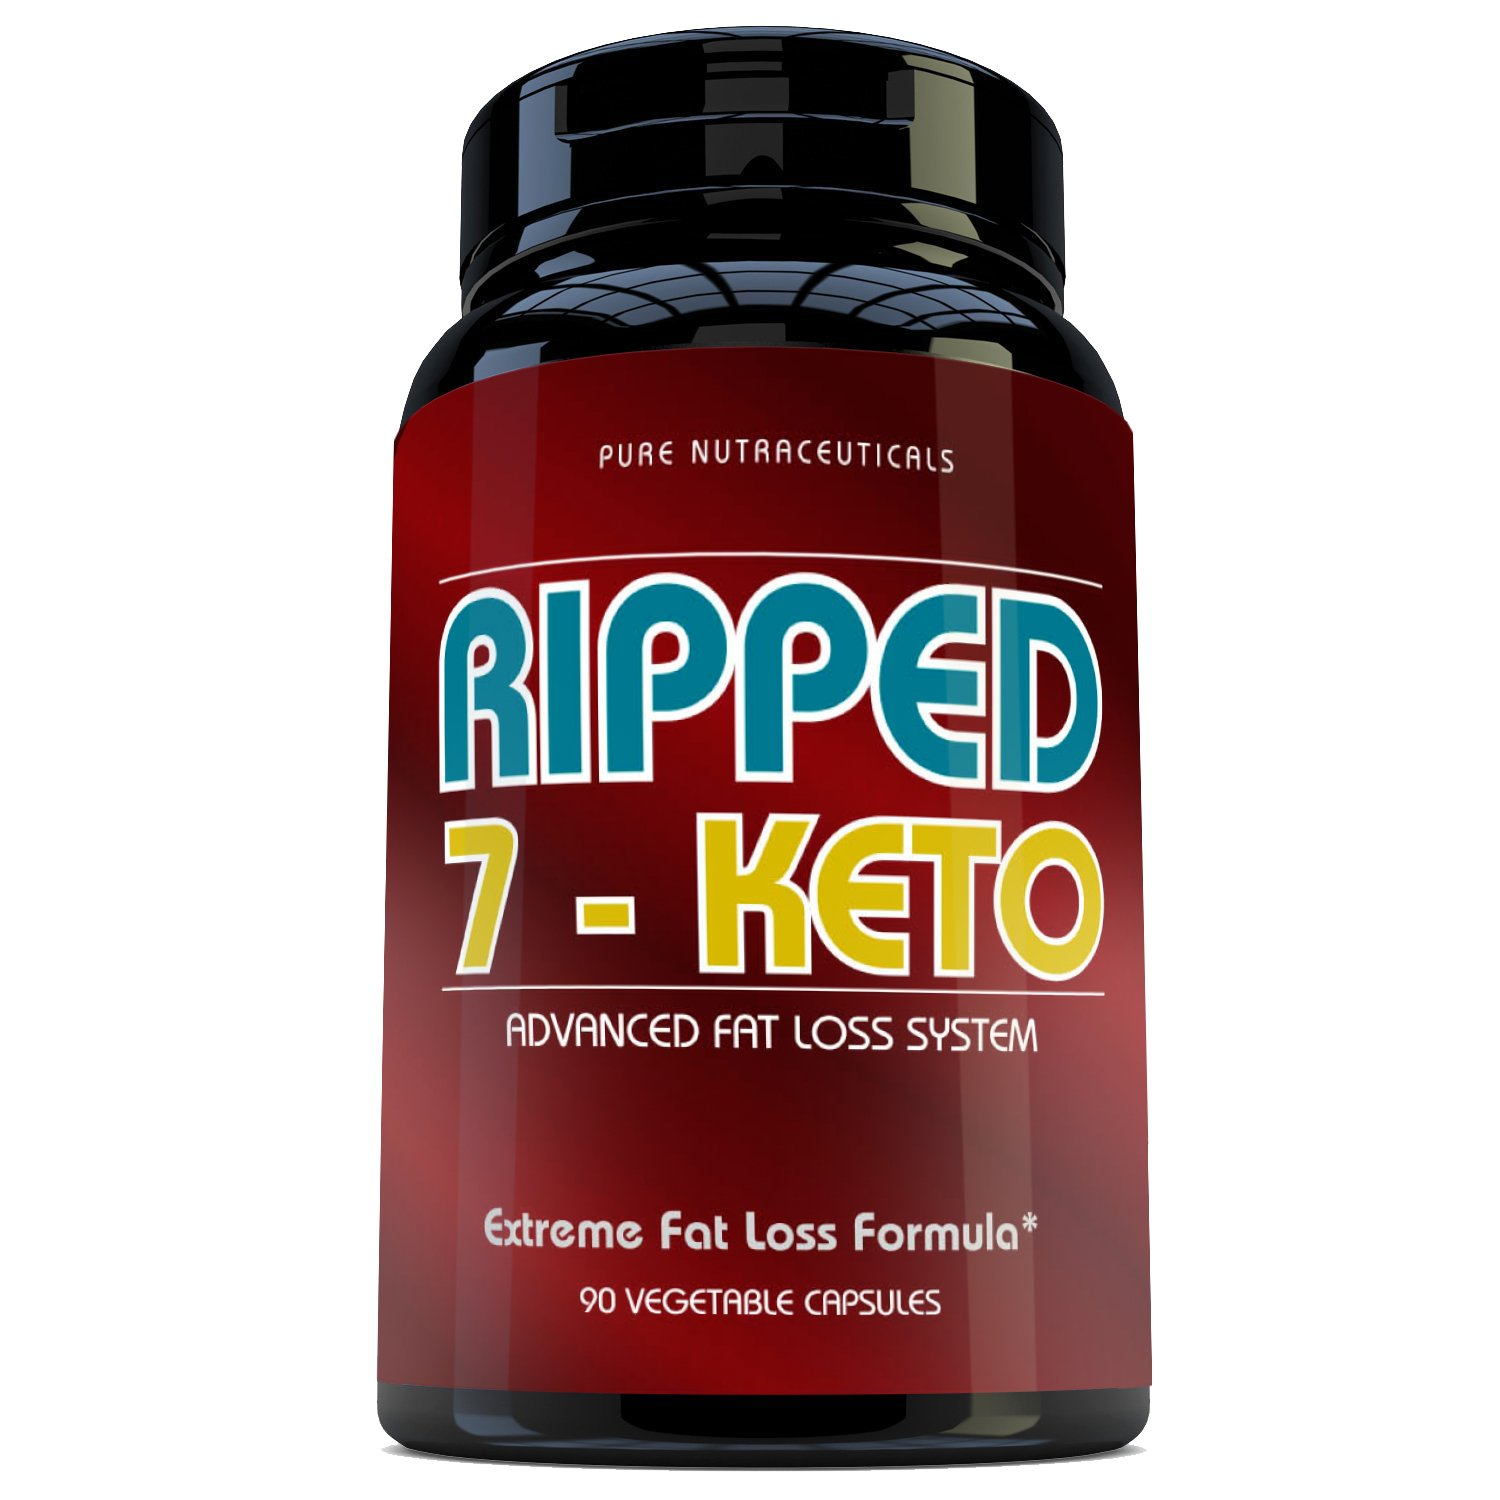 7 Keto 100 mg - 90 Vegetable capsules - complete weight loss system that includes all the Vitamin B, Folic Acid, Biotin, Chromium, Green Tea, and Caffeine